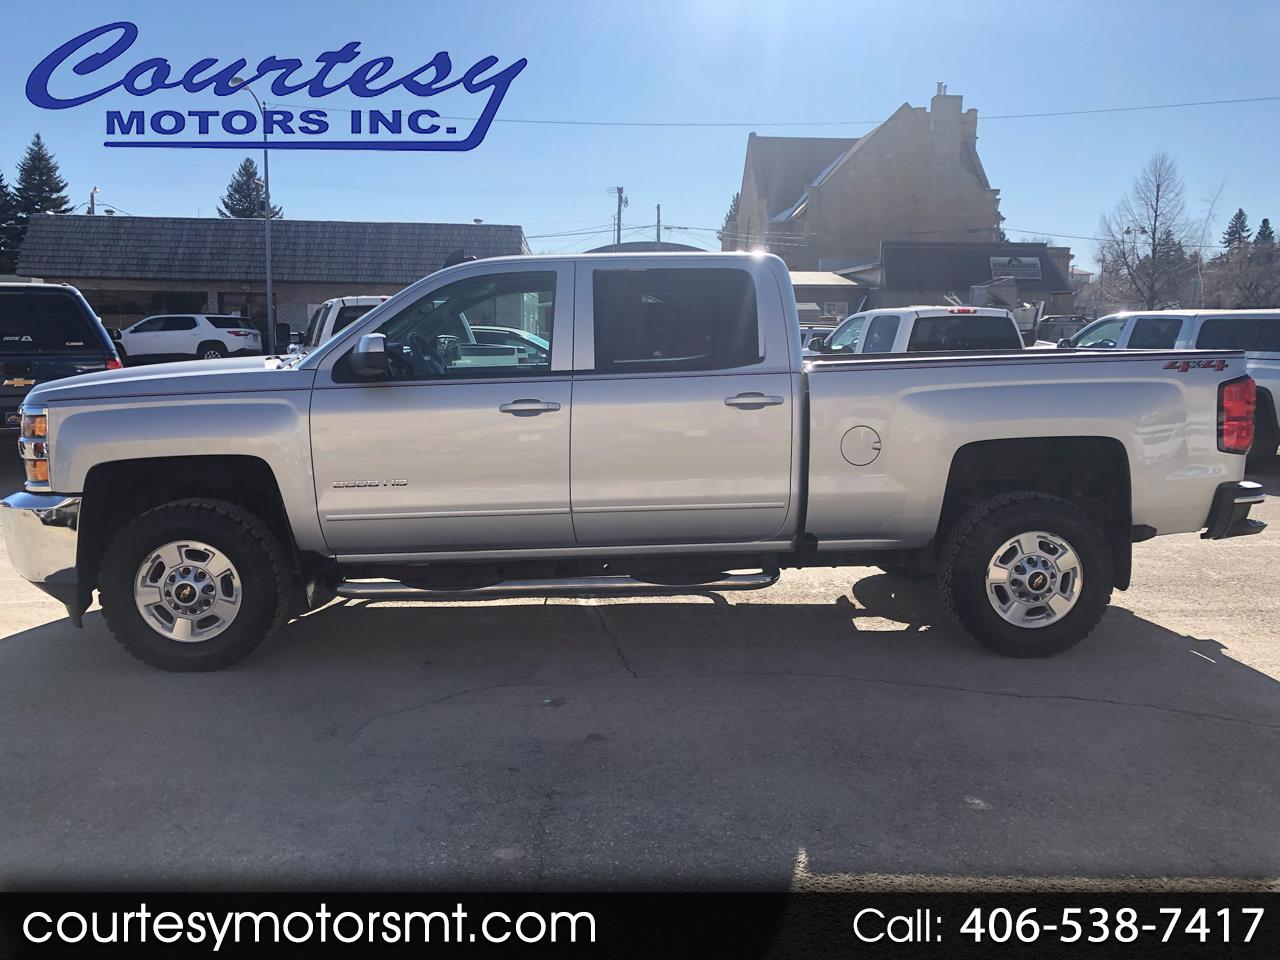 Chevrolet Silverado 2500HD LT Crew Cab Long Box 4WD 2018